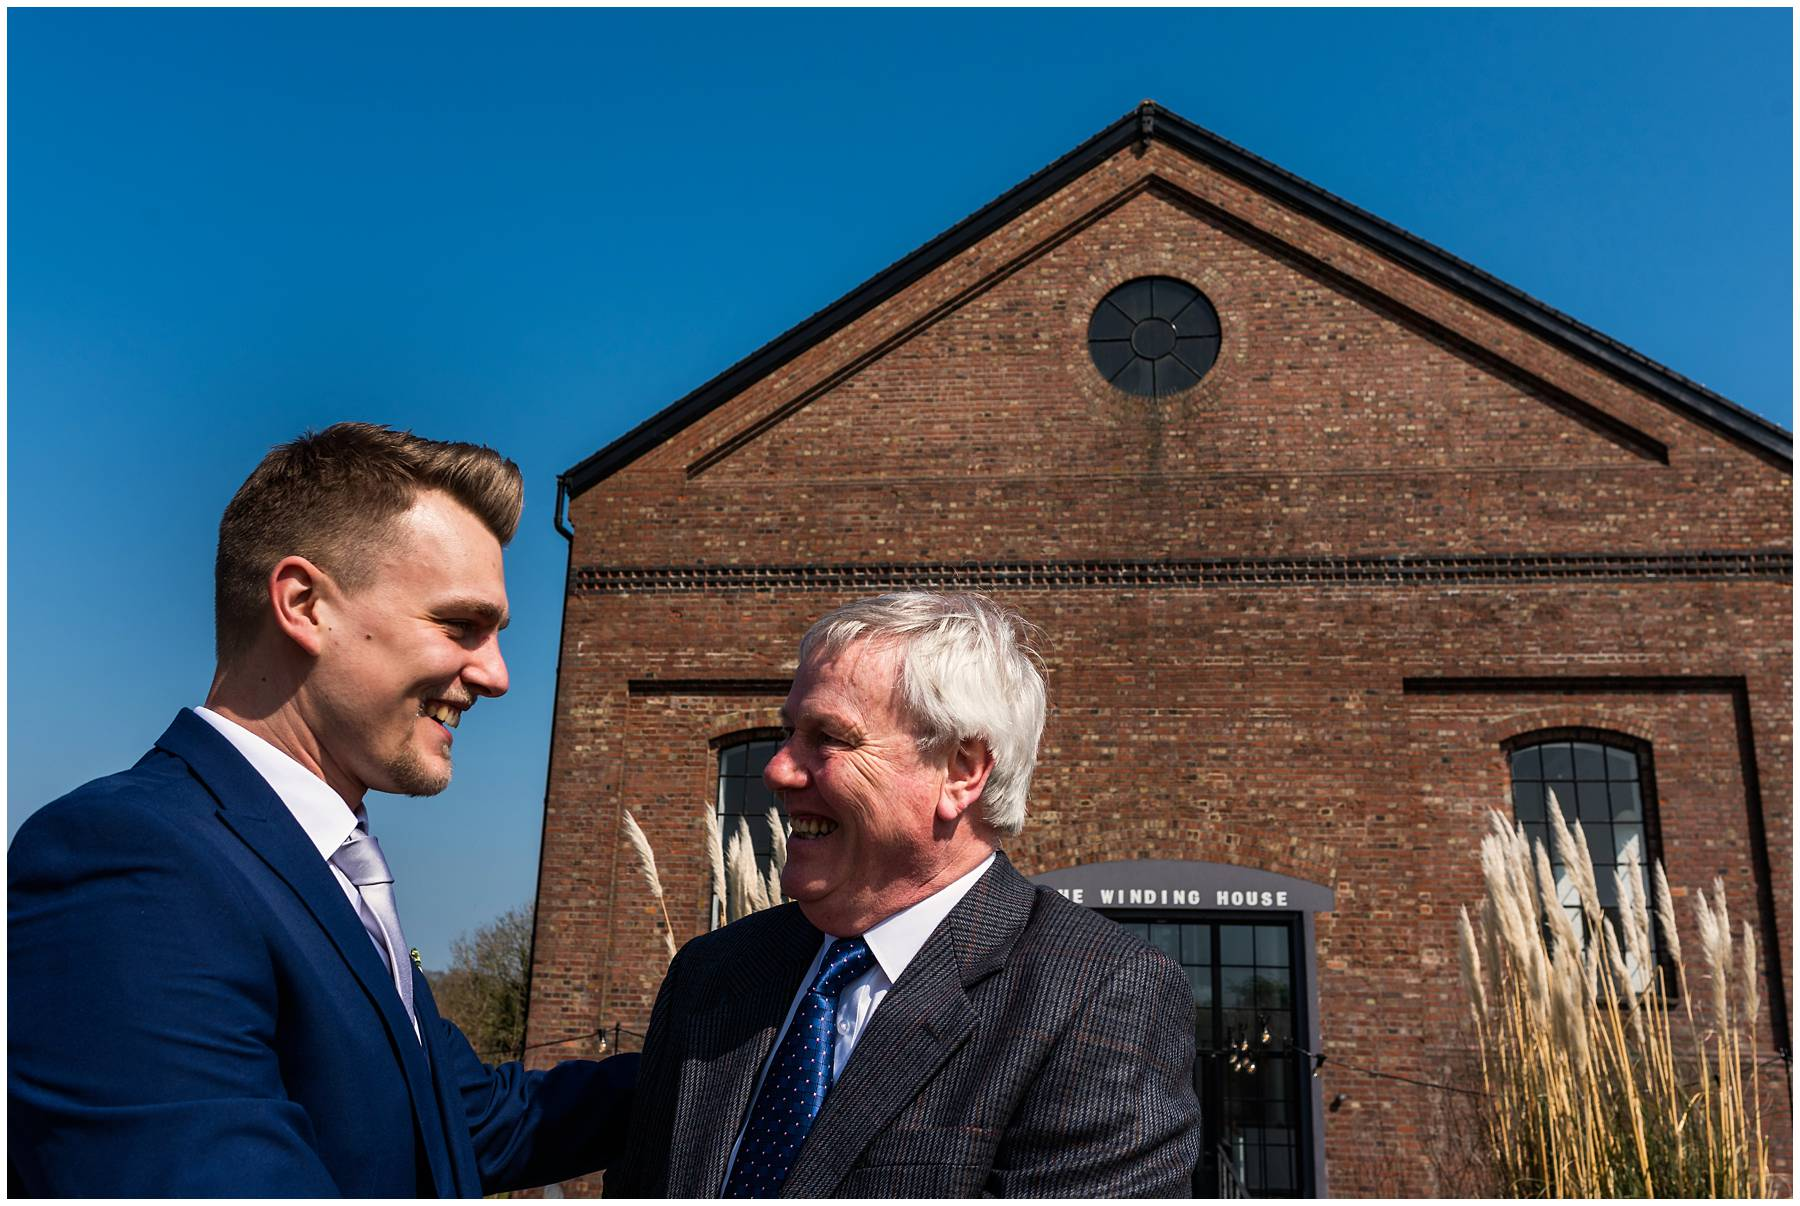 Groom greeting guests at the Winding House